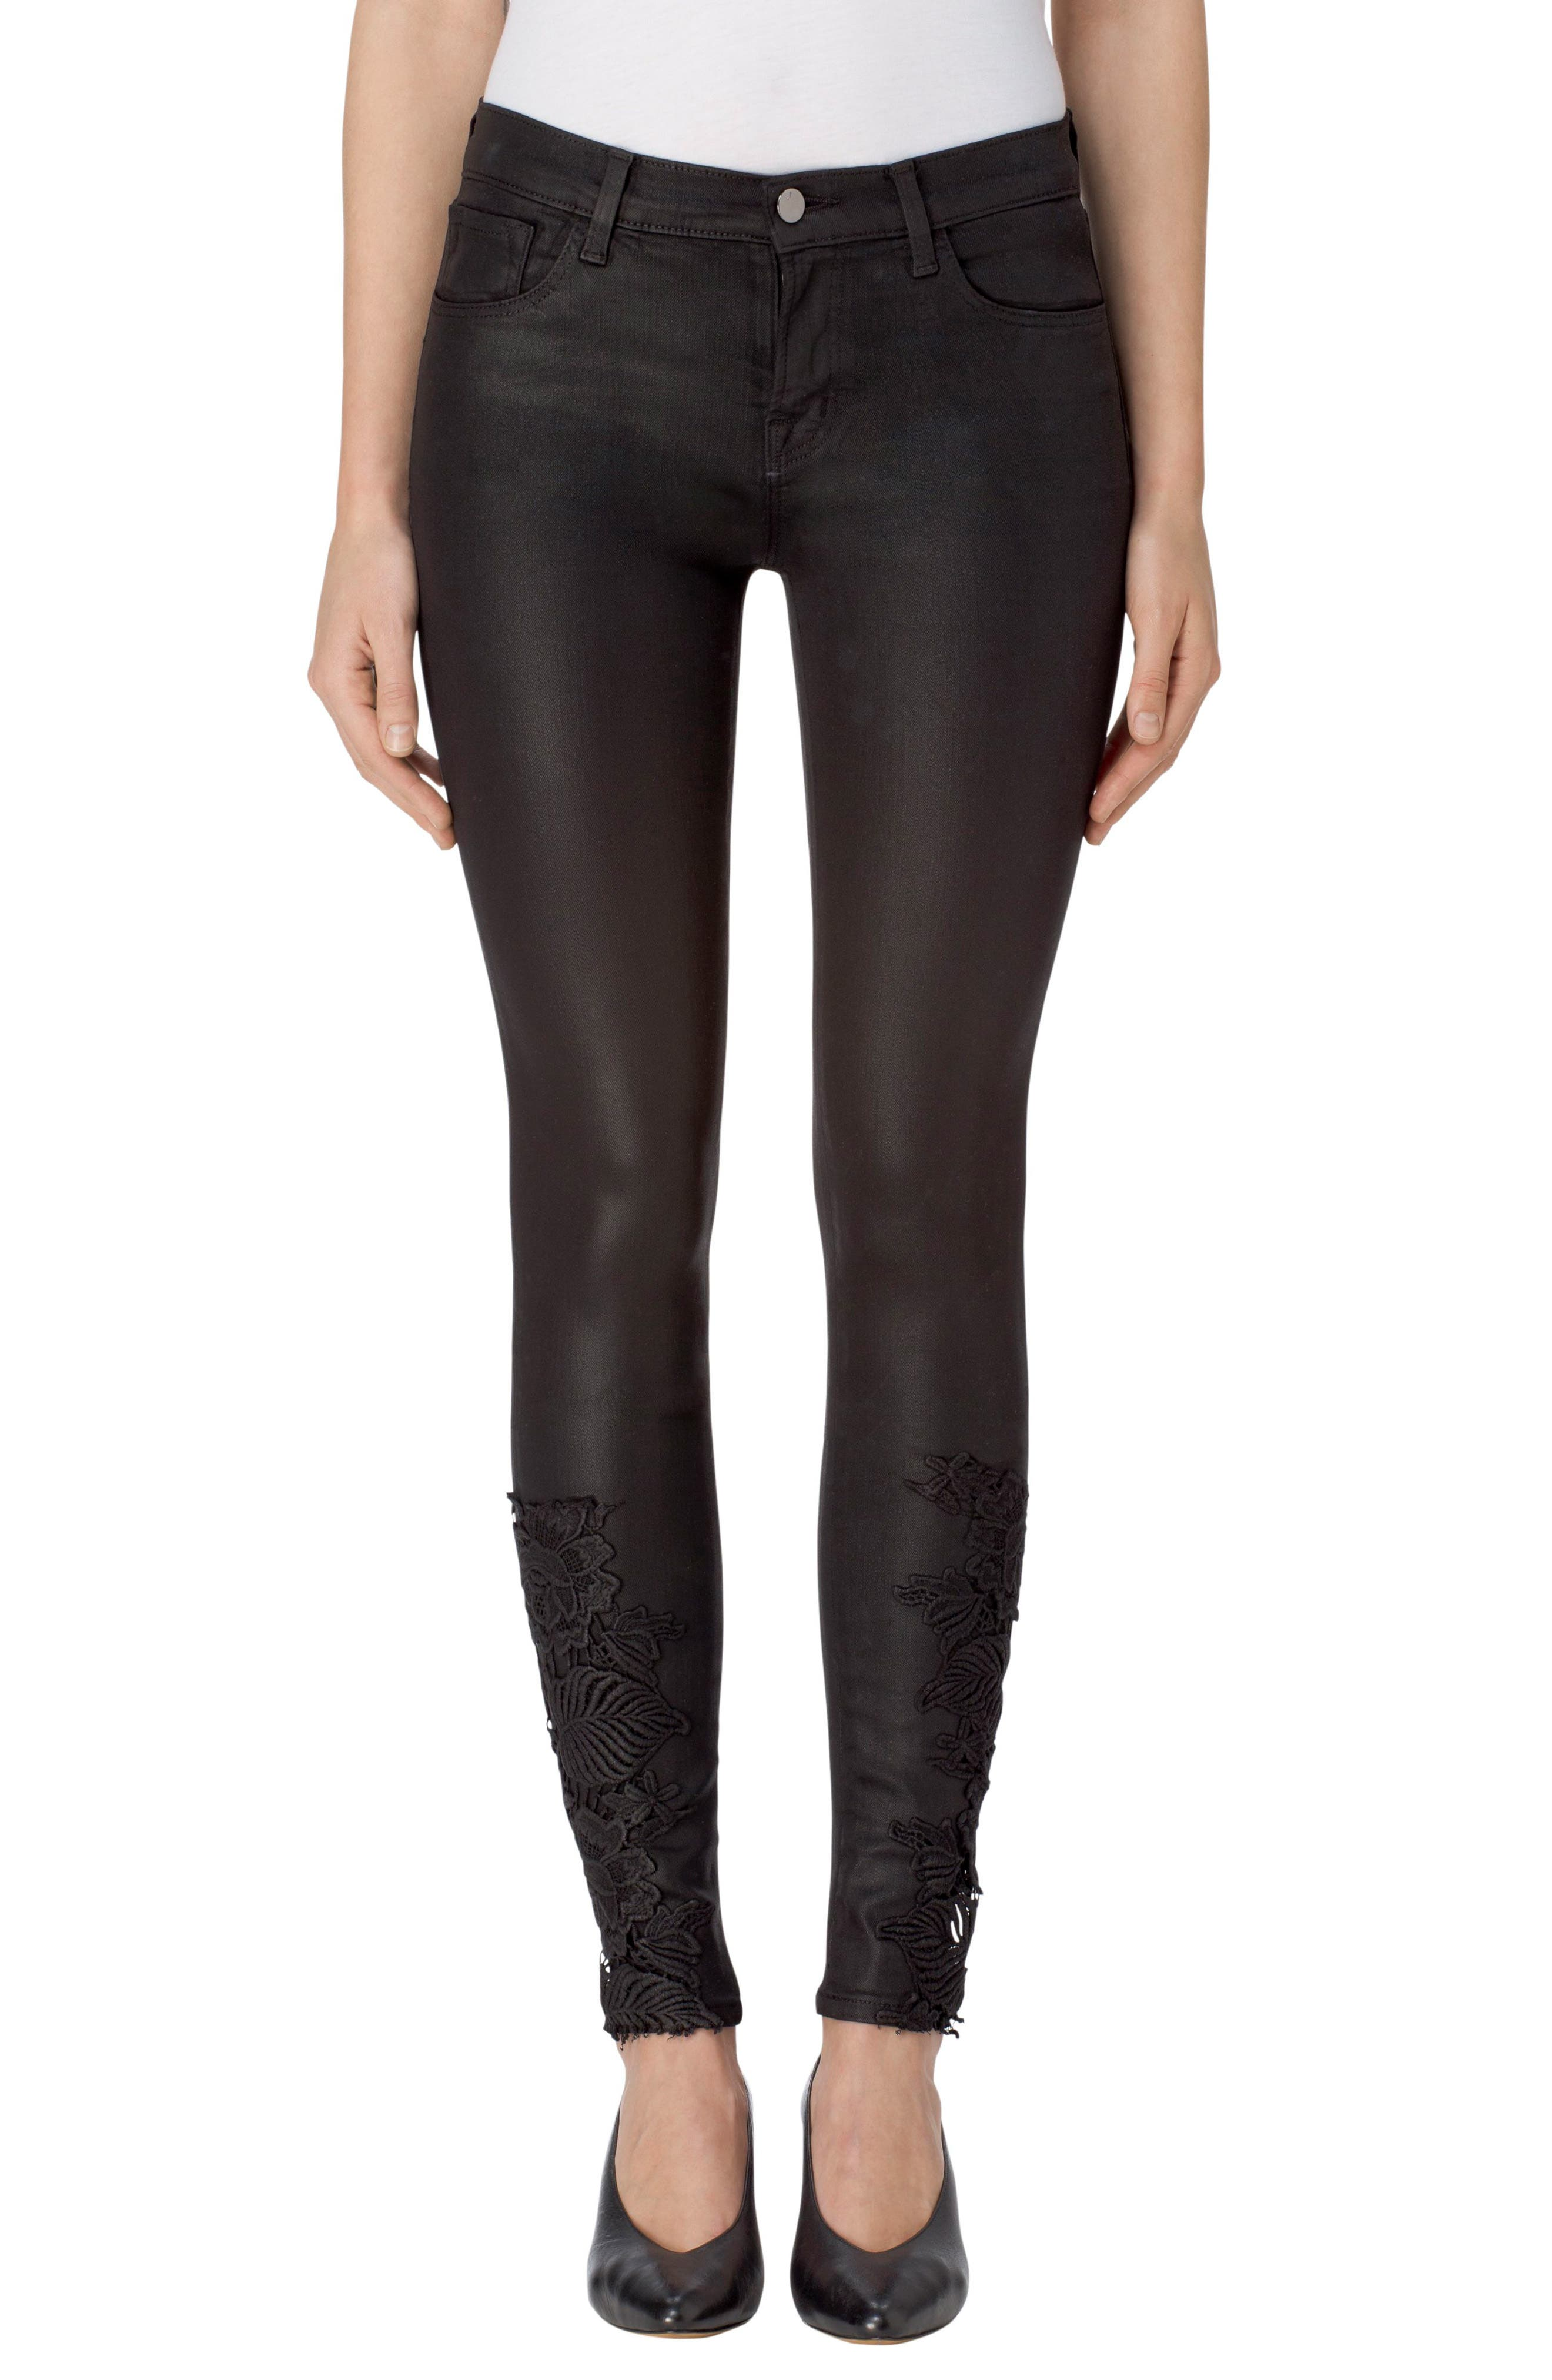 Main Image - J Brand 620 Mid Rise Super Skinny Jeans (Coated Black Lace)